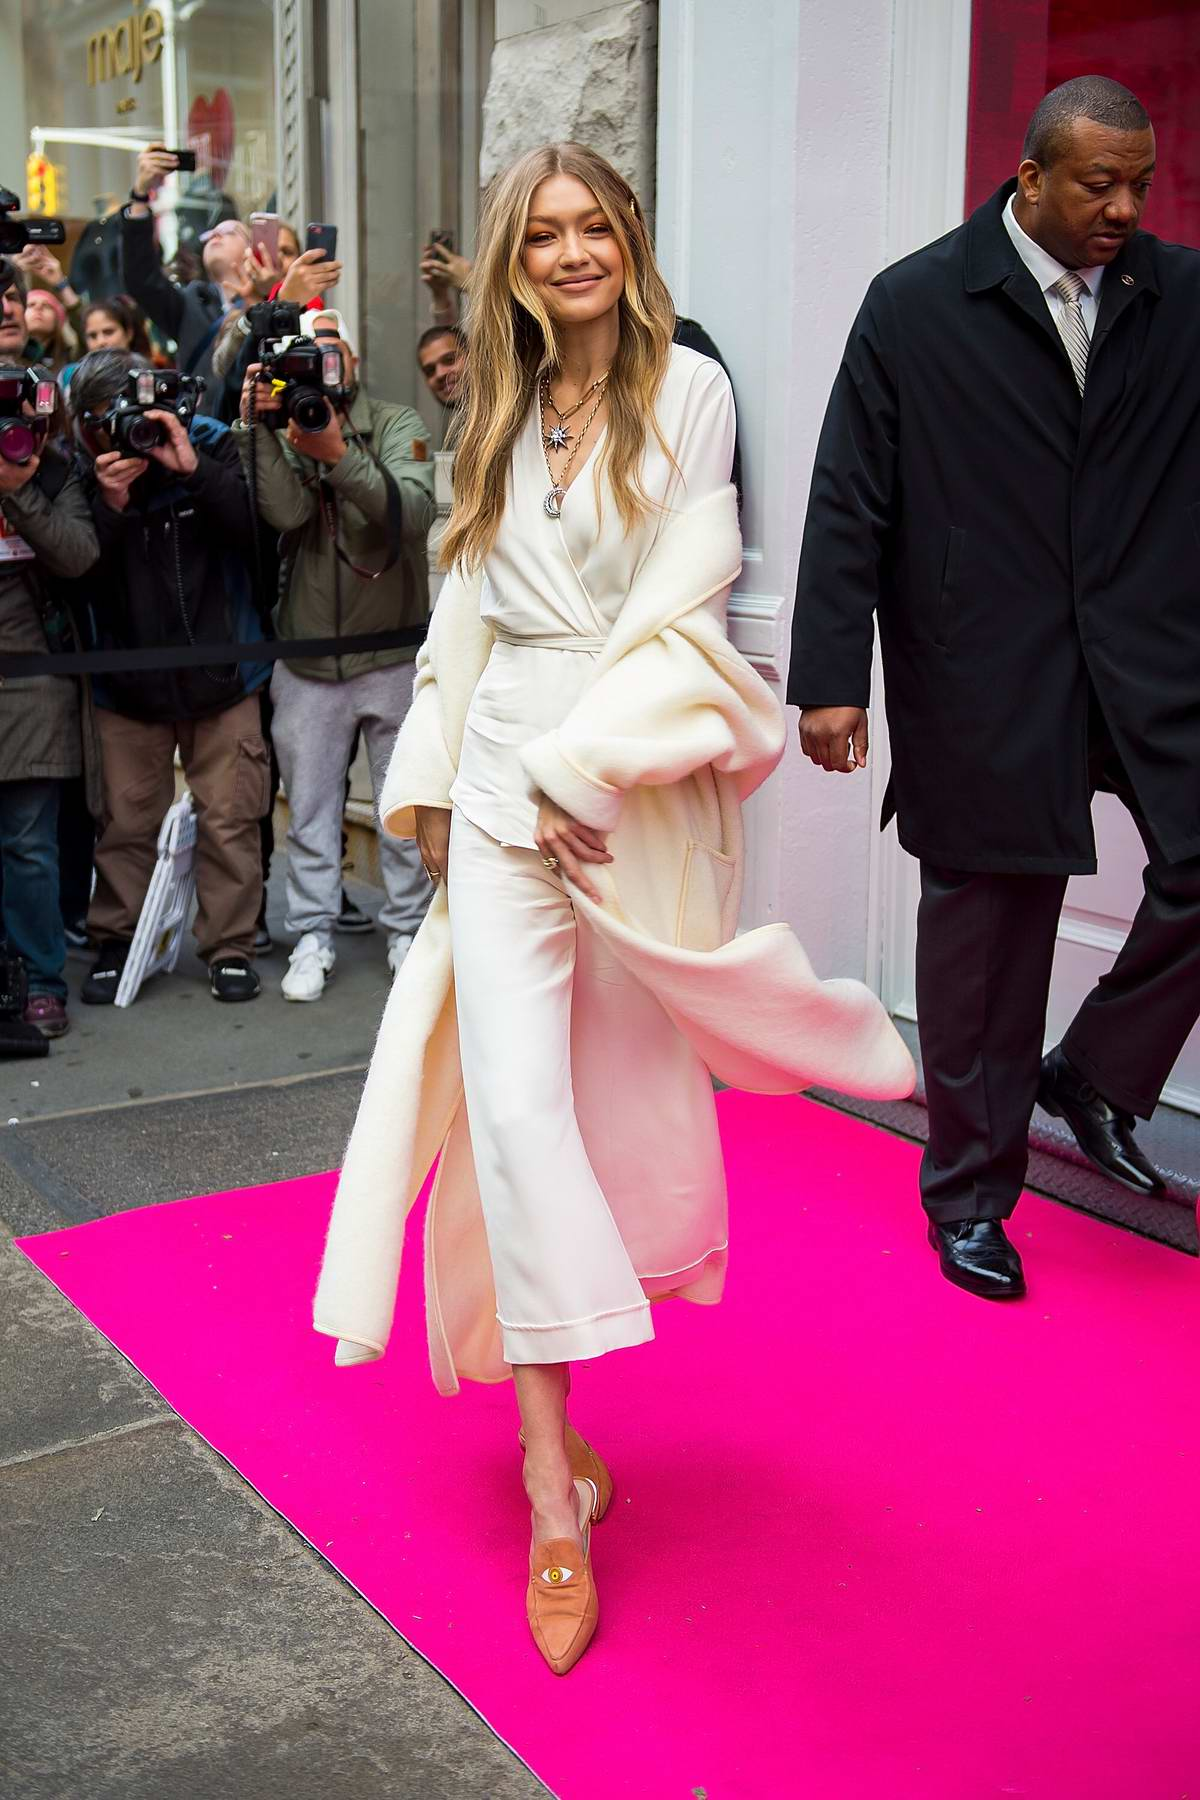 Gigi Hadid poses for fans as she attends the Stuart Weitzman store opening in New York